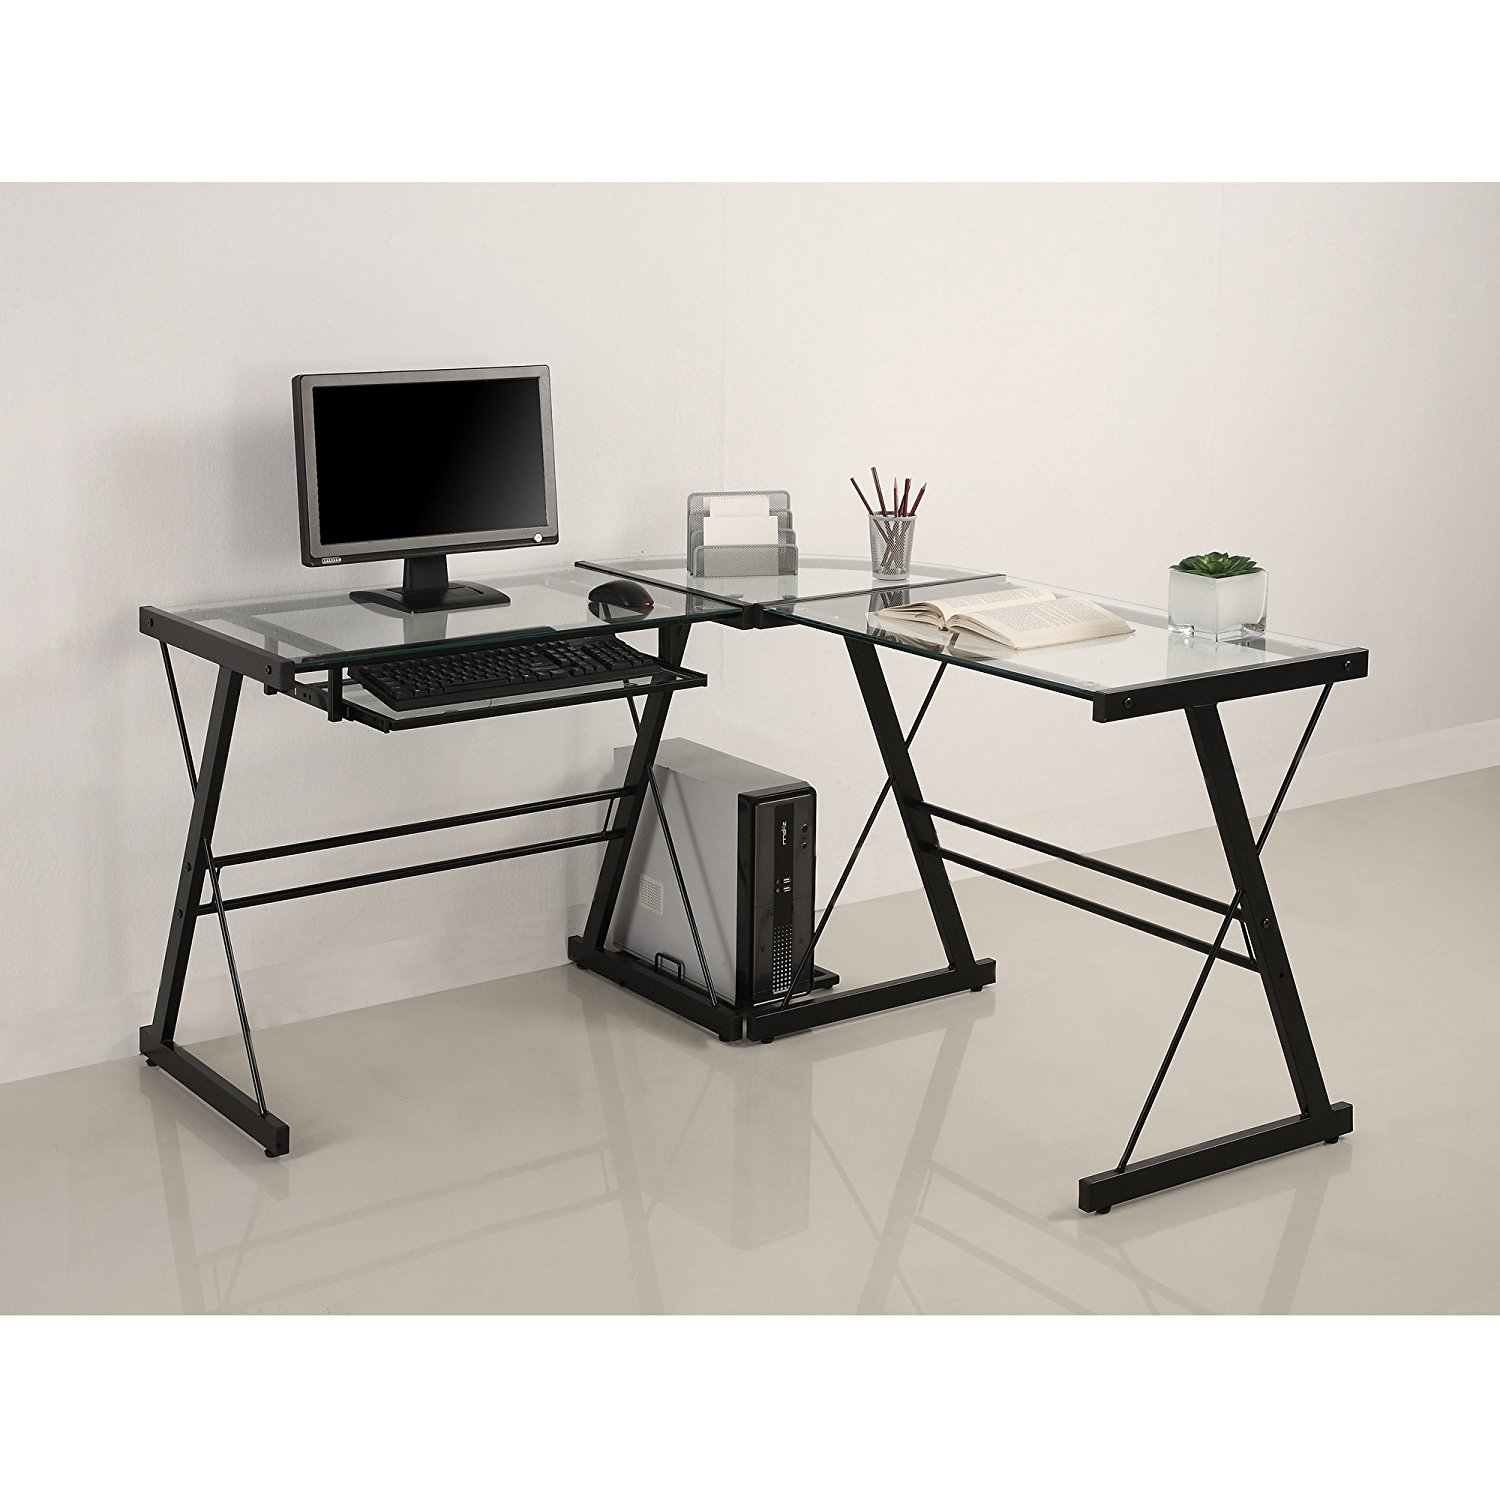 Walker Edison 3 Piece Contemporary Desk Multi